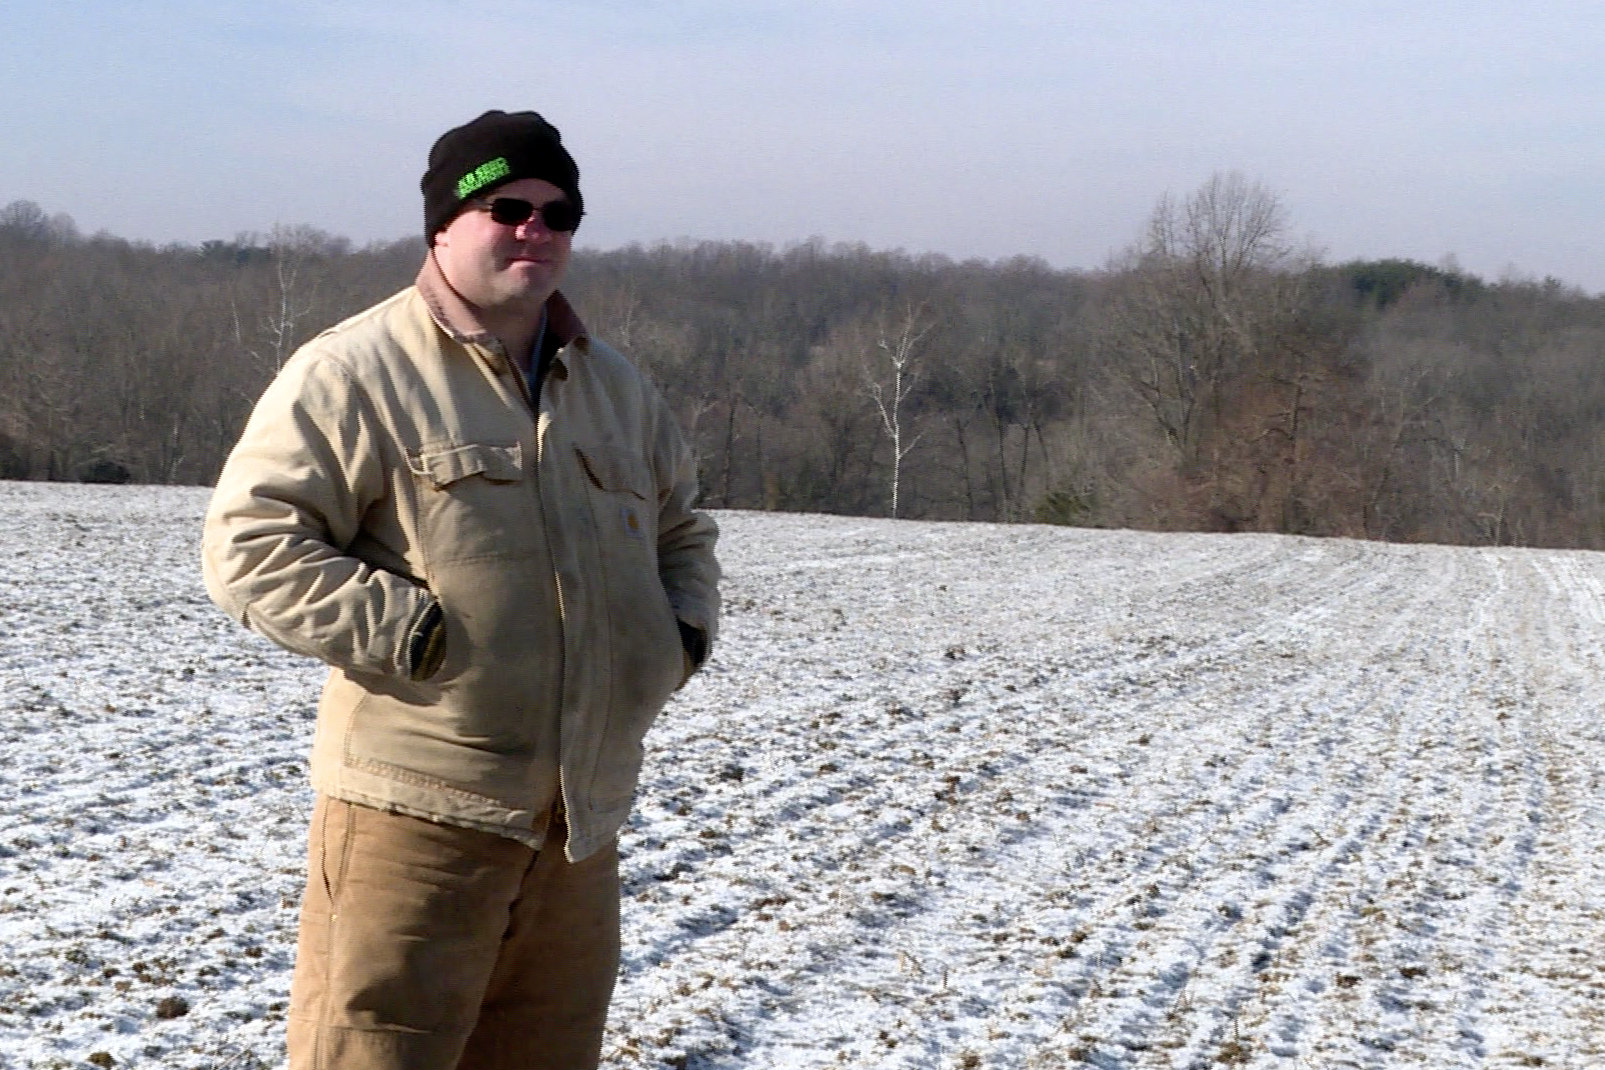 Jeff Bailey is a part-time farmer in Bloomington. He's one of few Indiana farmers younger than the average age of 58.